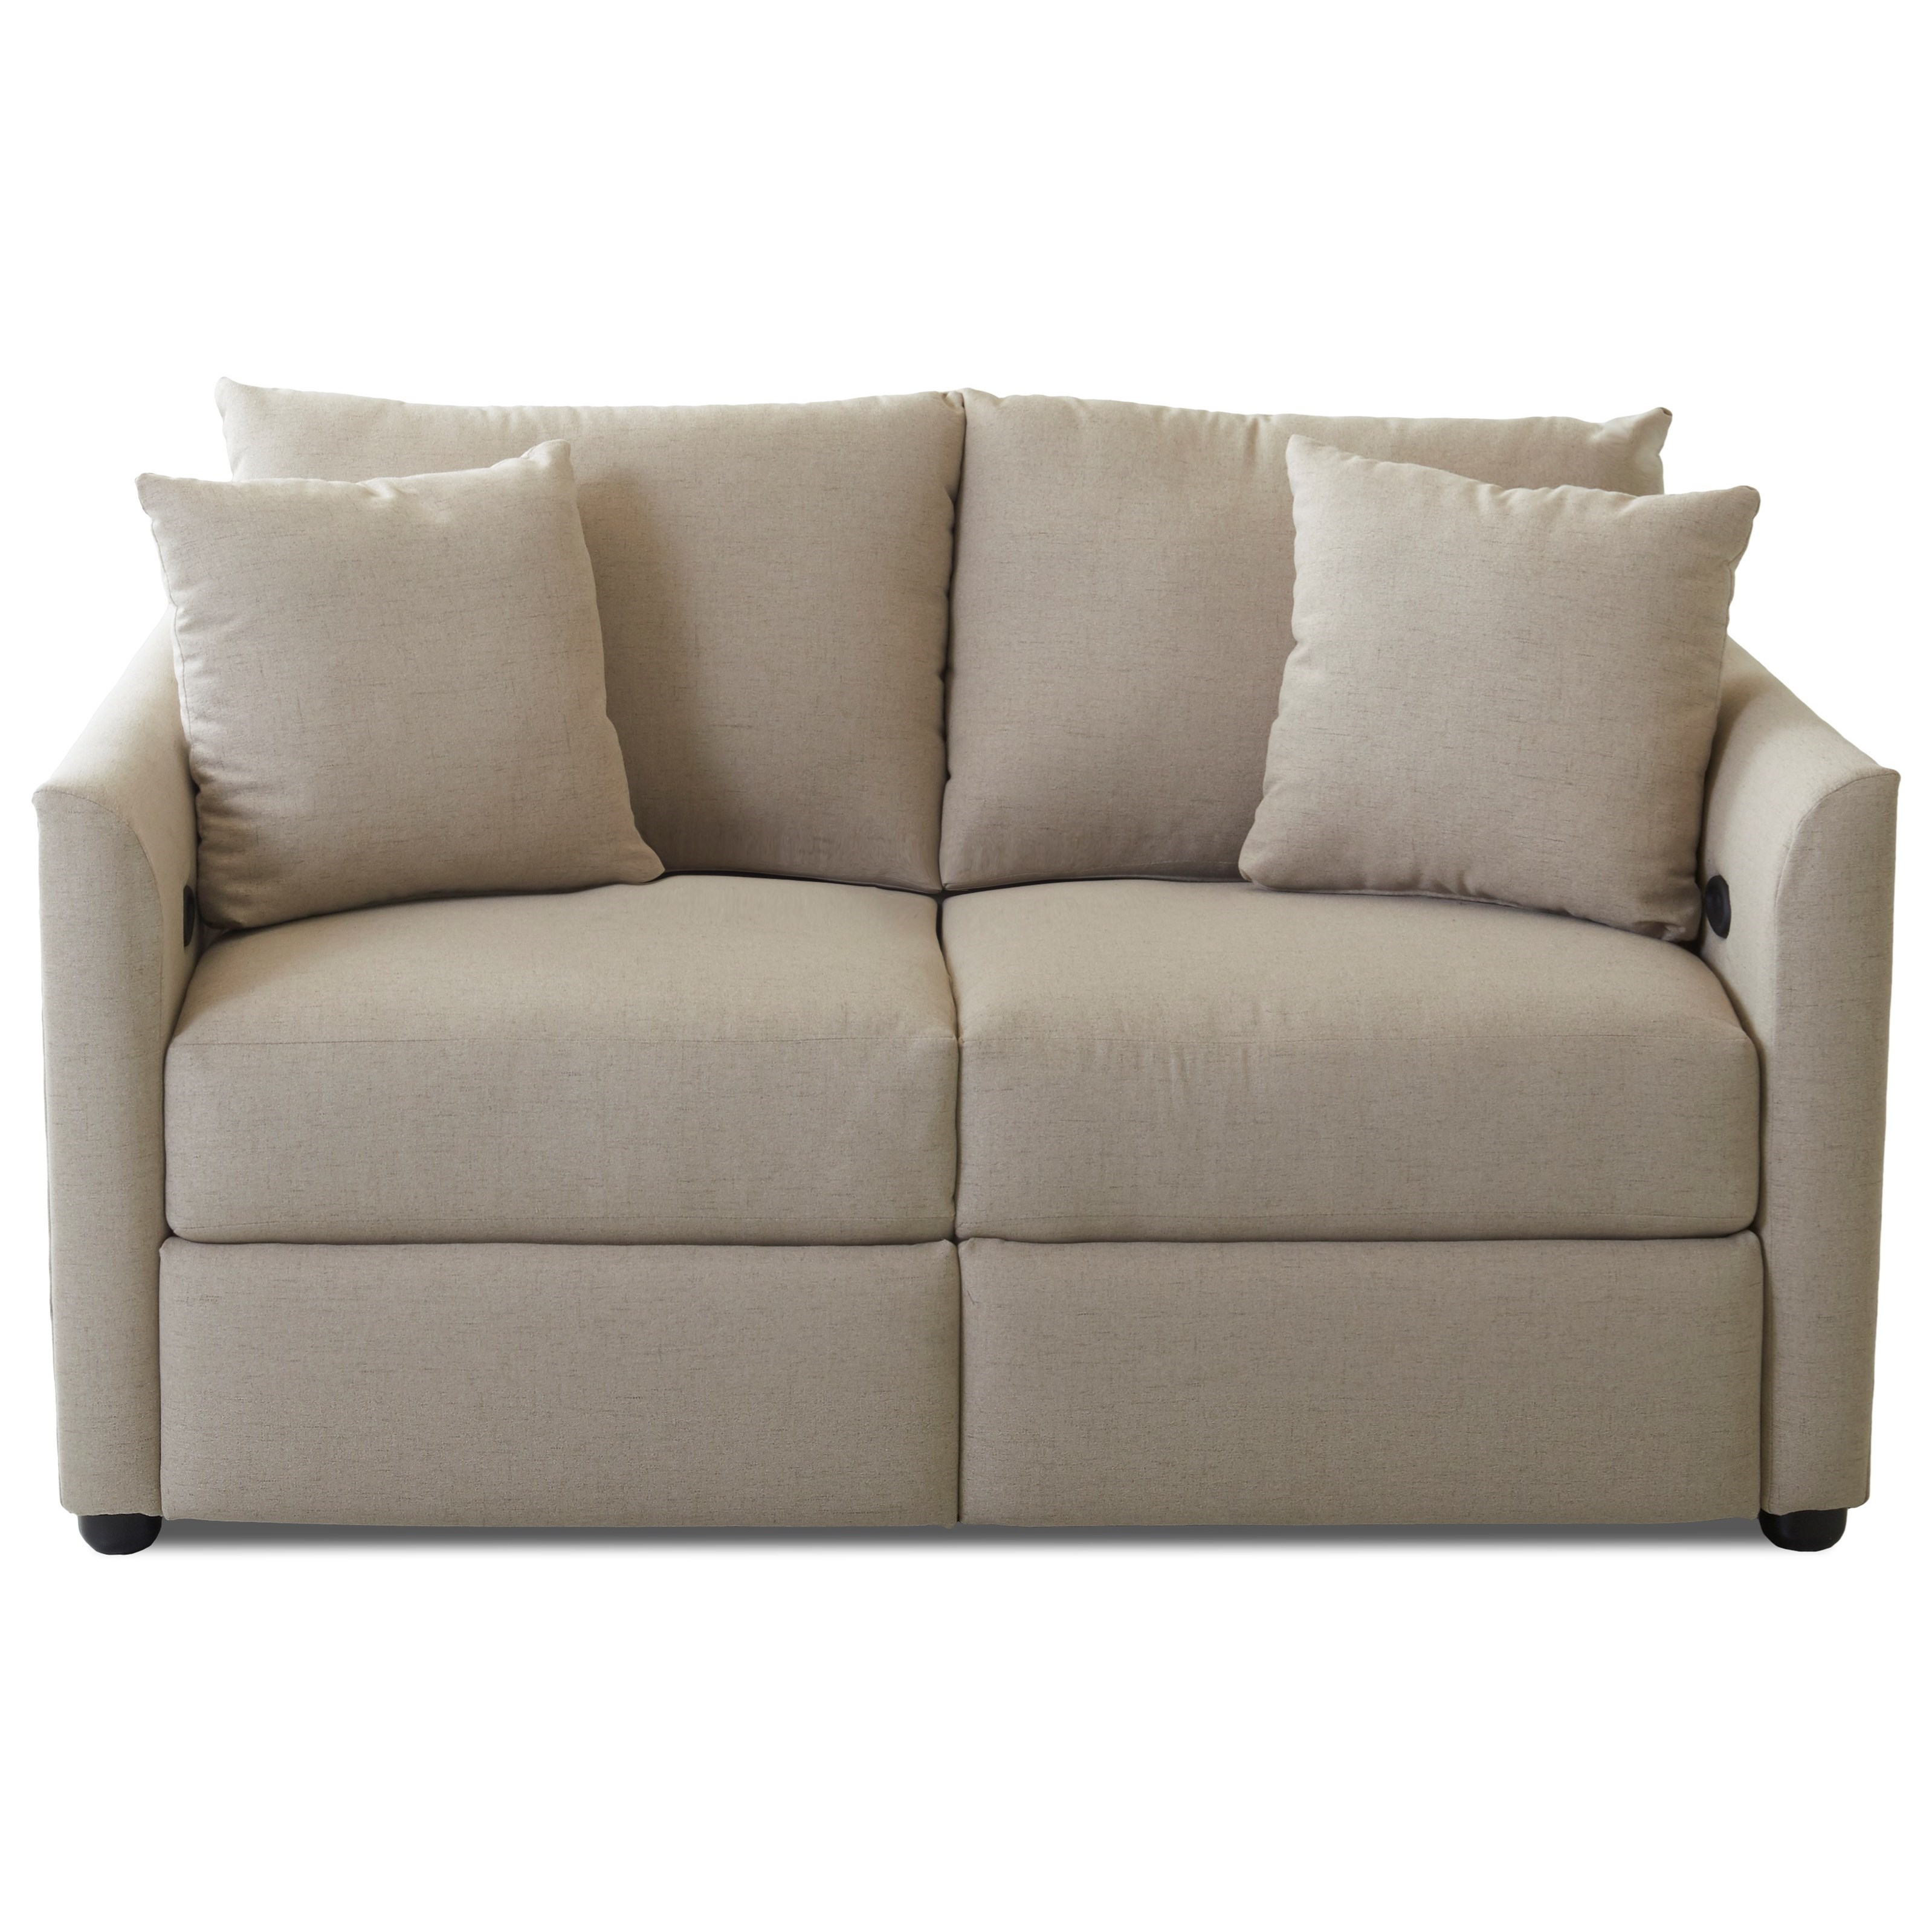 Atlanta Power Reclining Loveseat by Klaussner at H.L. Stephens